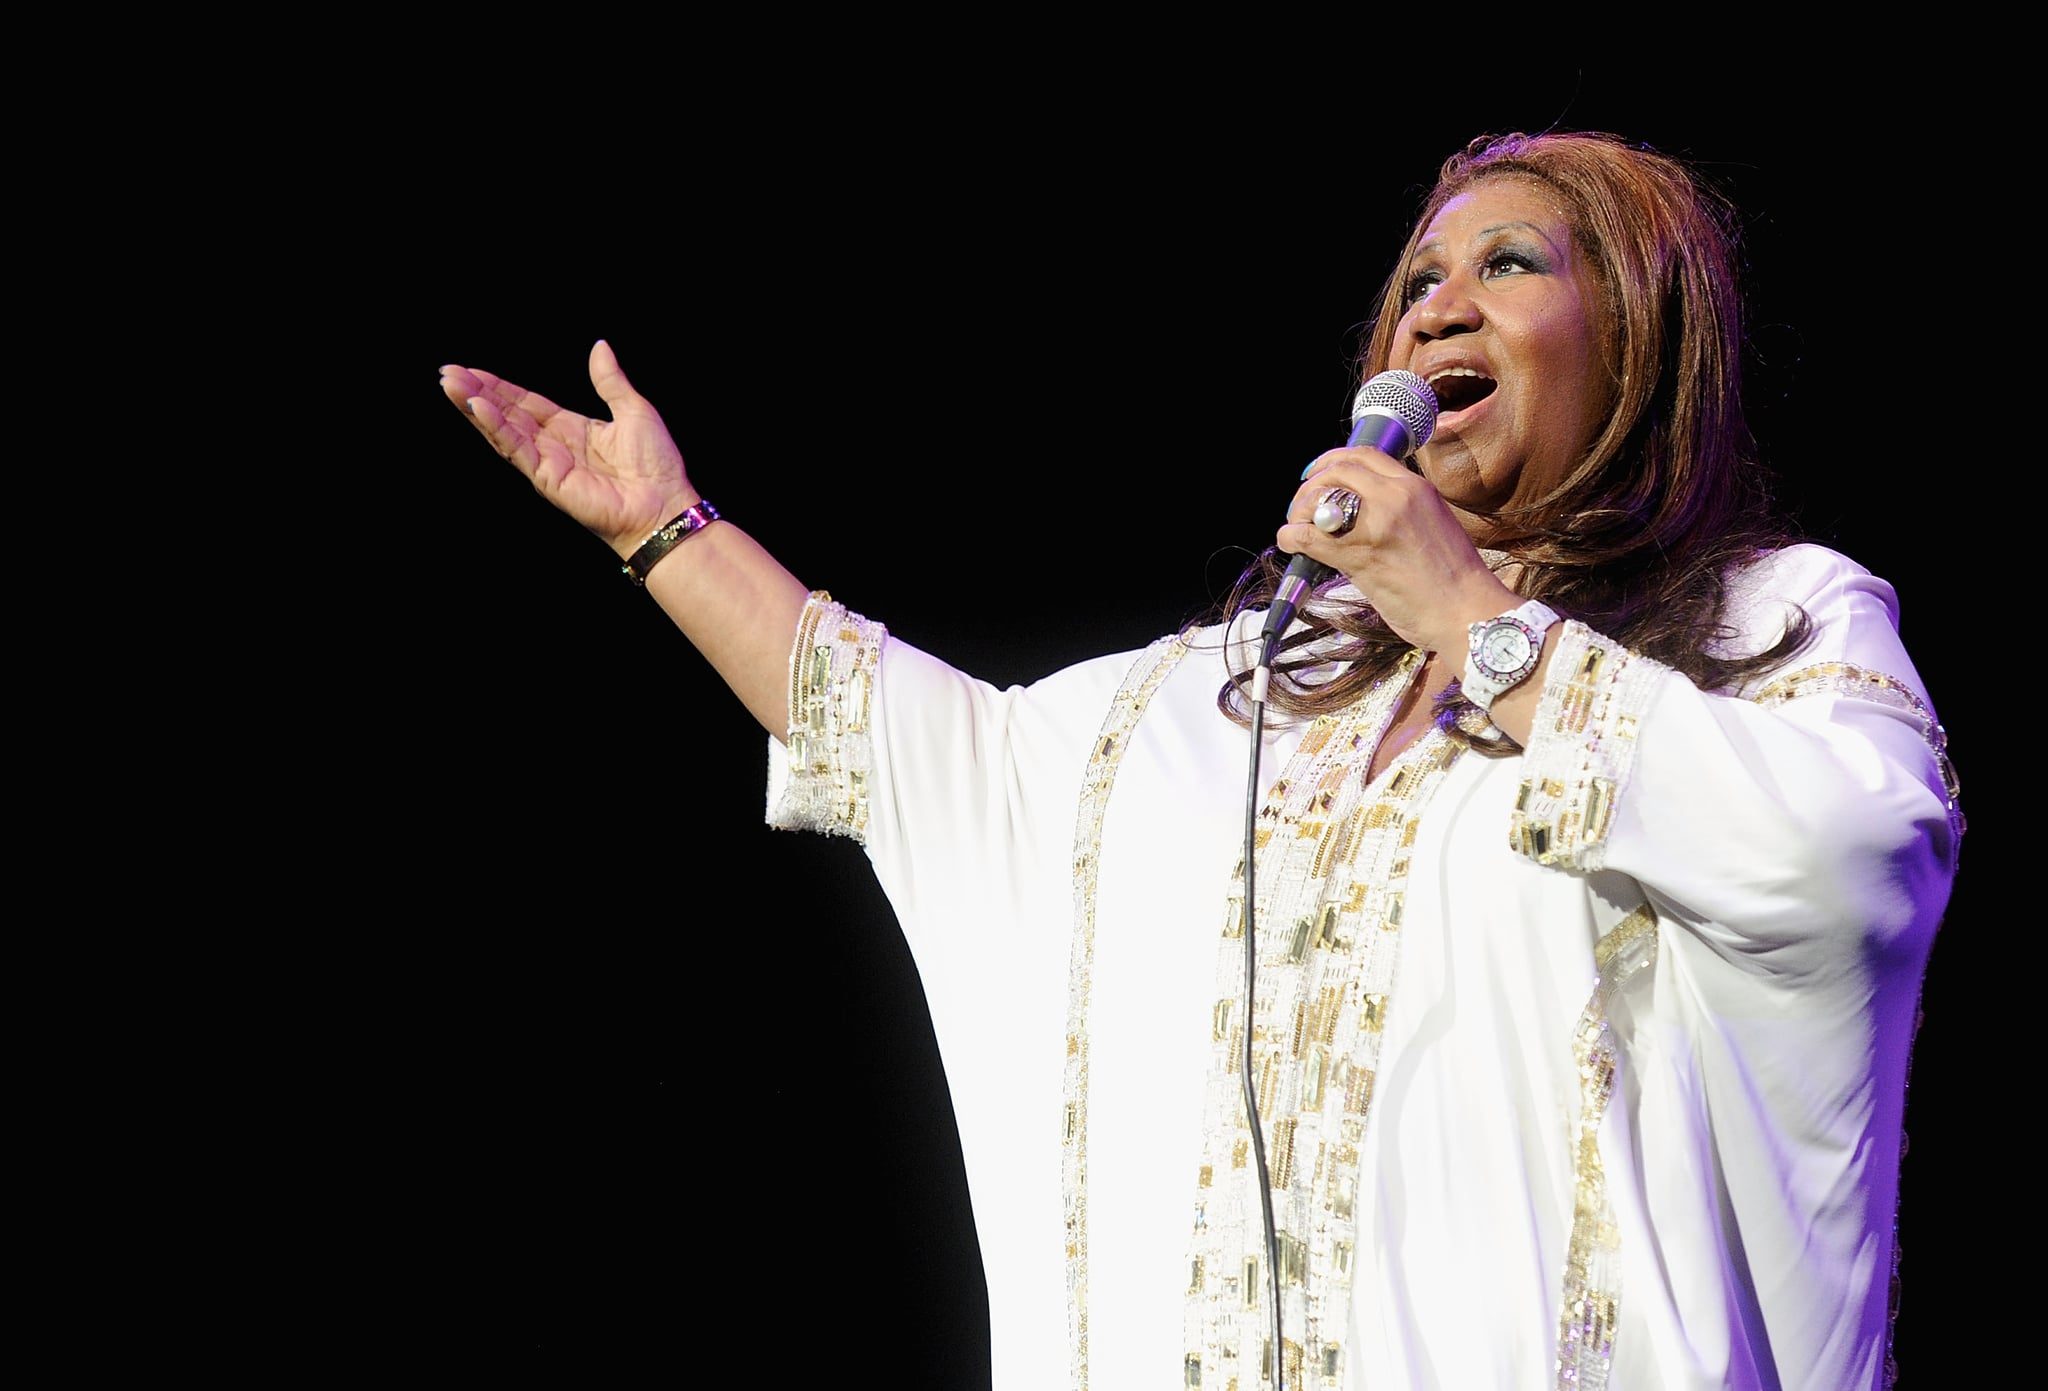 NEW YORK, NY - FEBRUARY 17:  Aretha Franklin performs at Radio City Music Hall on February 17, 2012 in New York City.  (Photo by Jamie McCarthy/Getty Images)